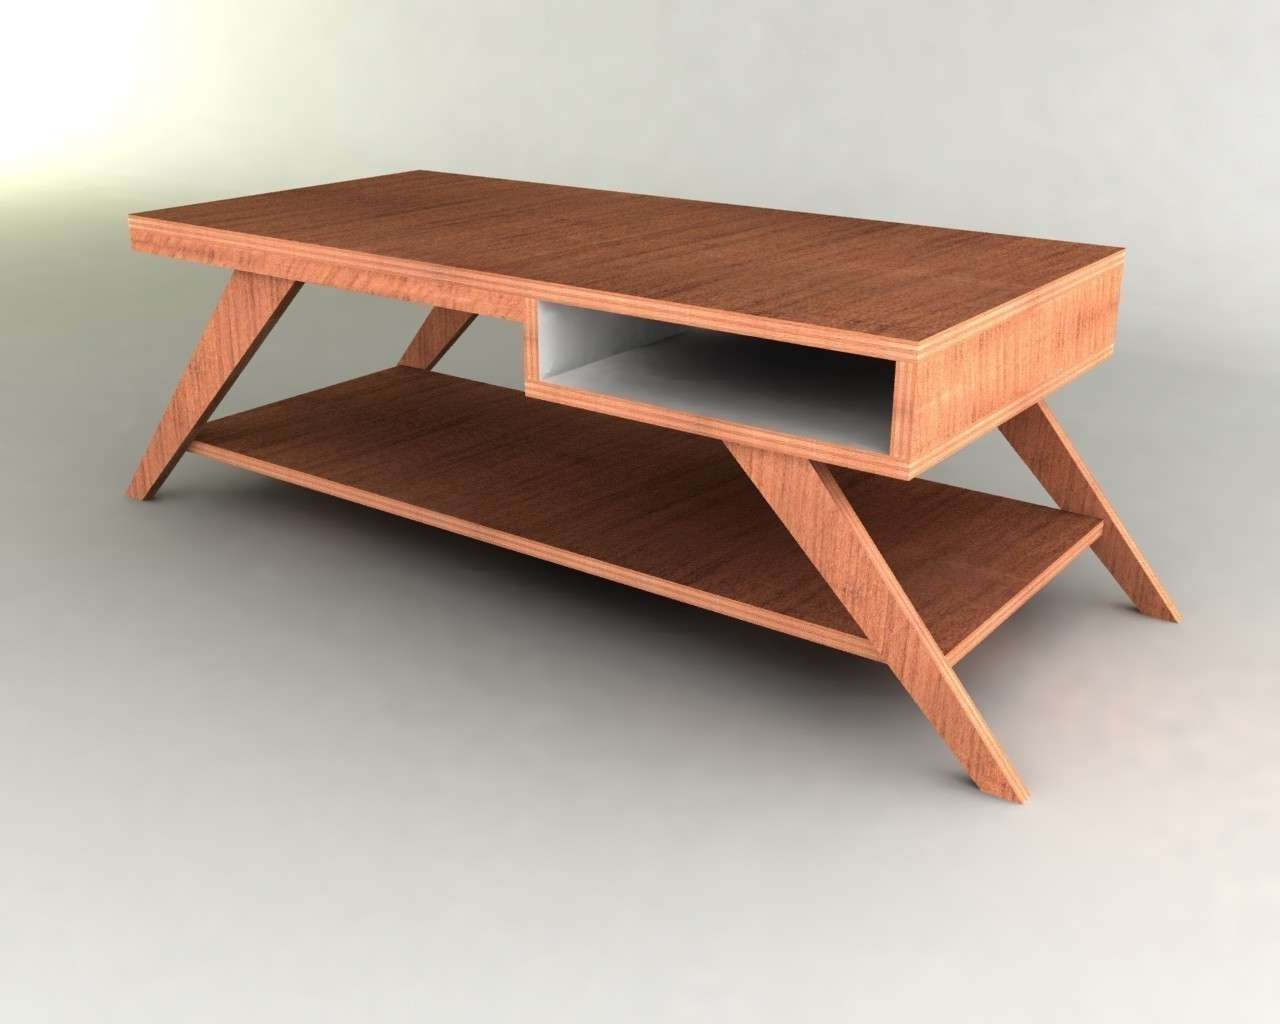 Best And Newest Wood Modern Coffee Tables Intended For Retro Modern Eames Style Coffee Table Furniture Plan (View 2 of 20)